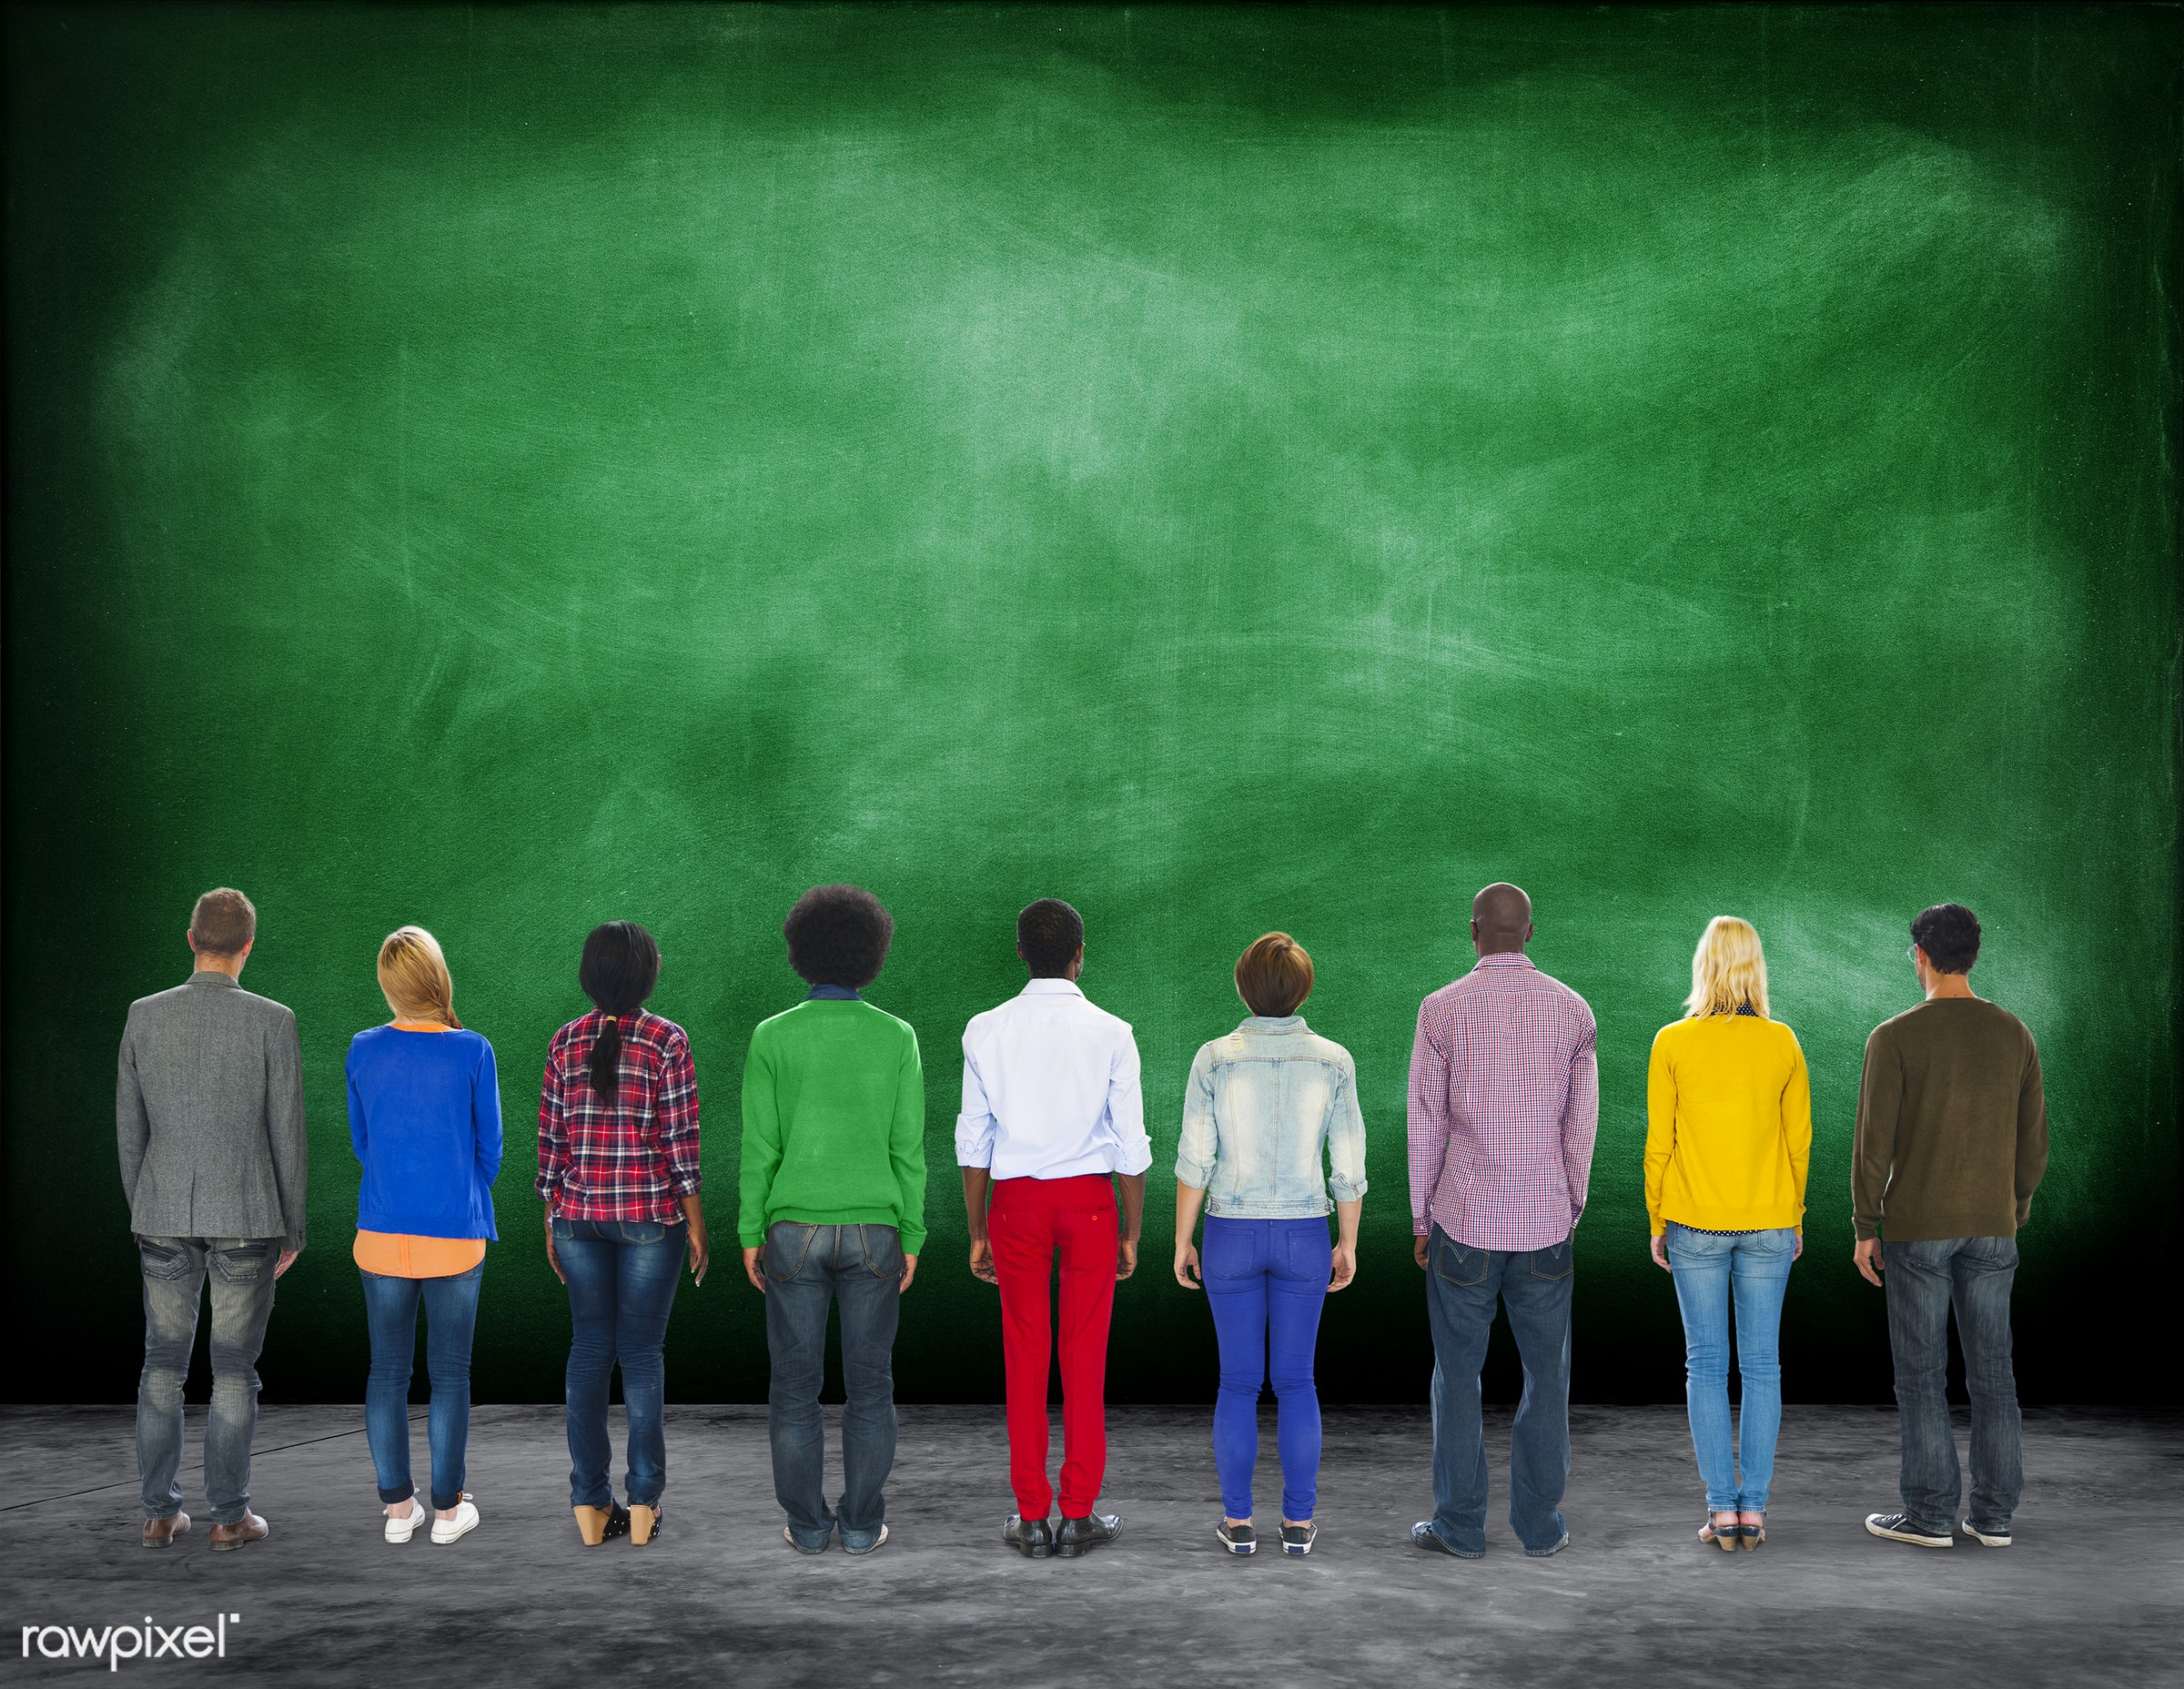 african descent, asian ethnicity, blackboard, casual, cheerful, diverse, diversity, education, ethnicity, group, group of...